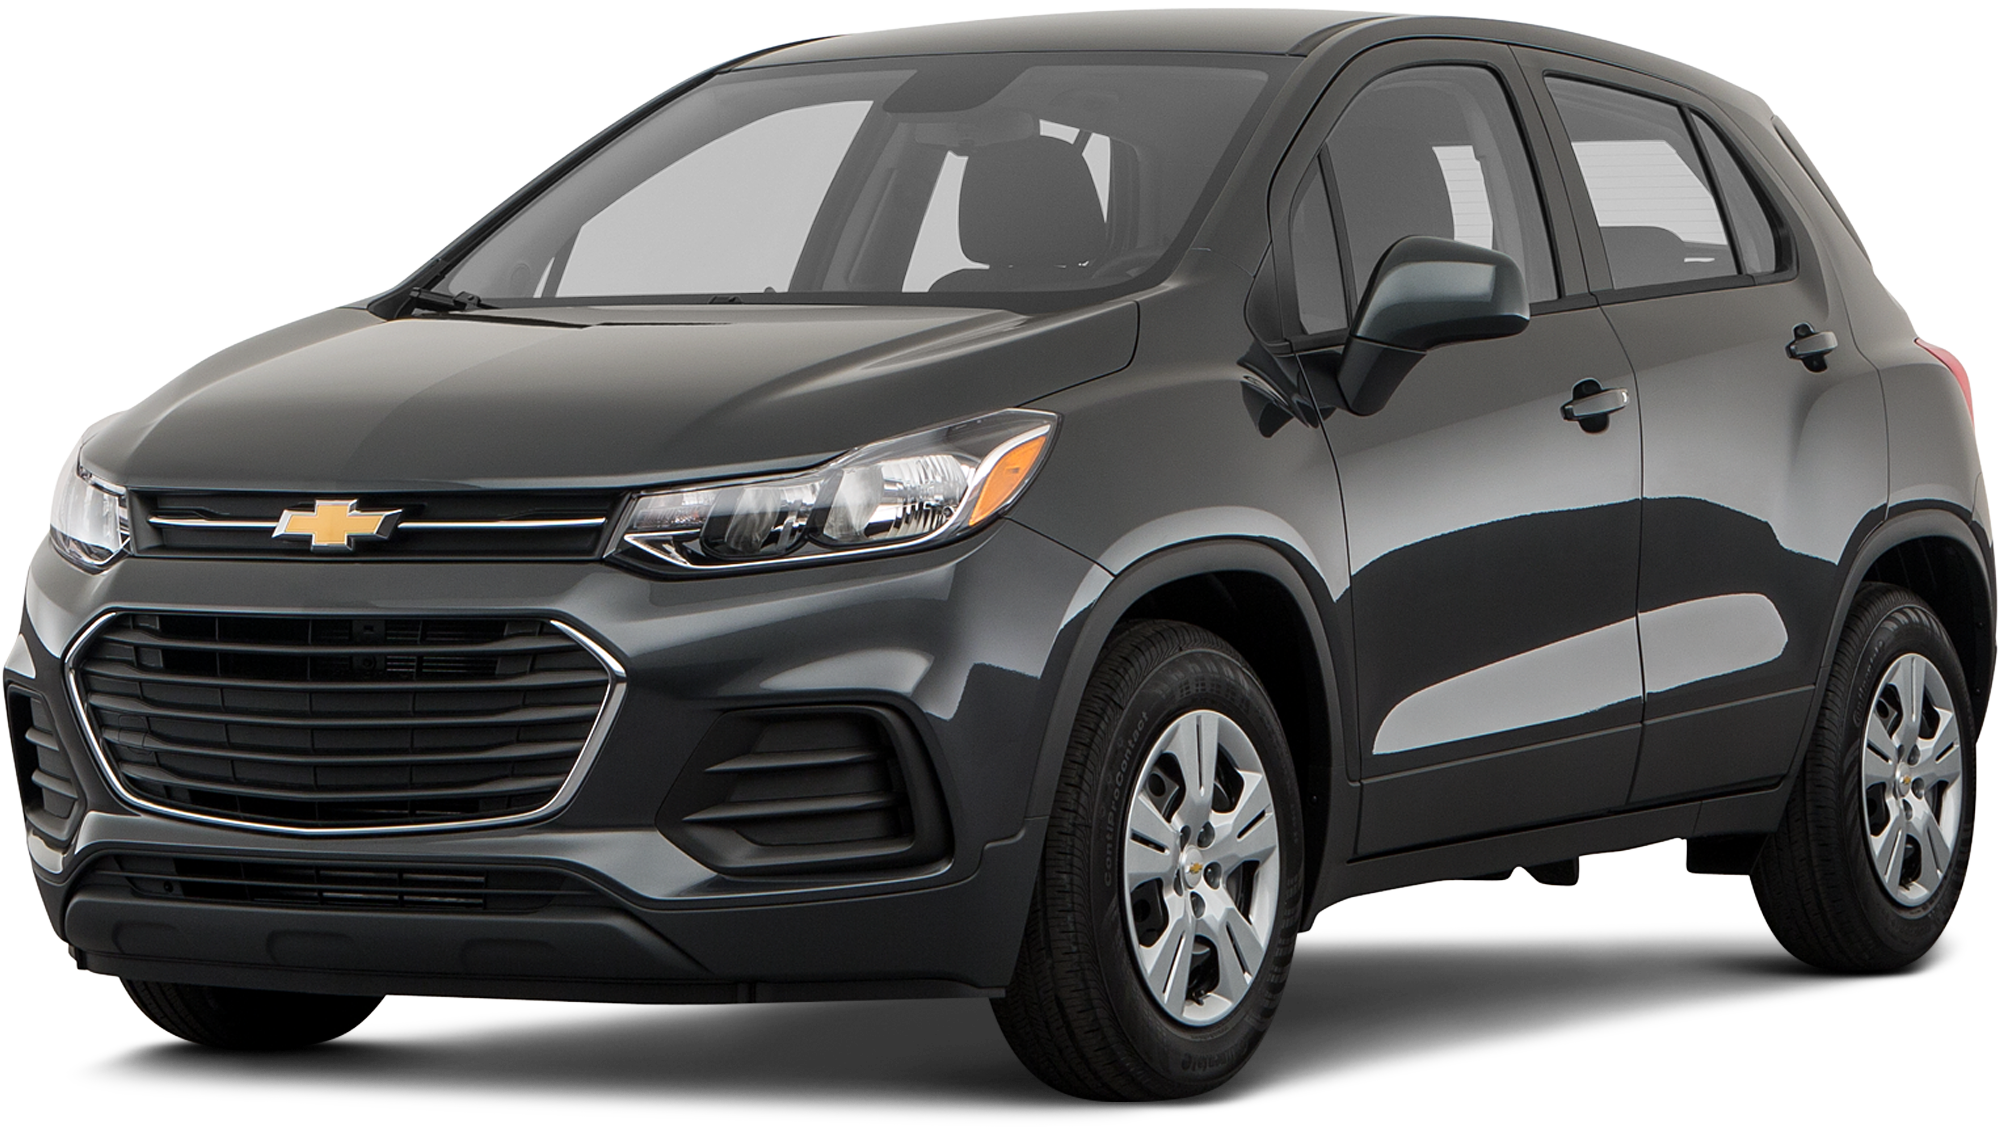 2020 Chevrolet Trax Incentives, Specials & Offers in ...